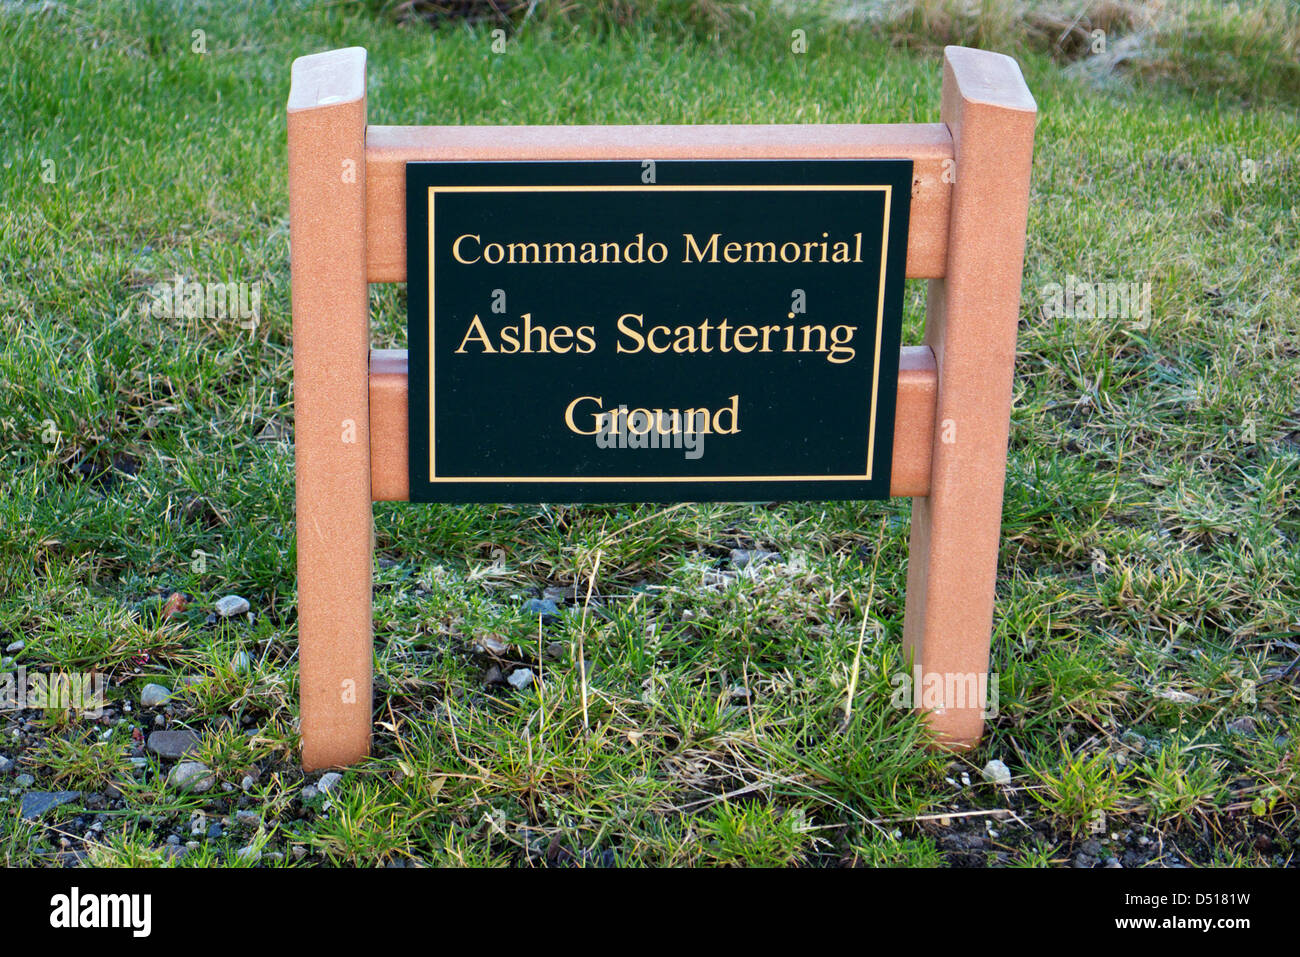 The Ashes scattering ground at the Commando Memorial at Spean Bridge, Scotland - Stock Image